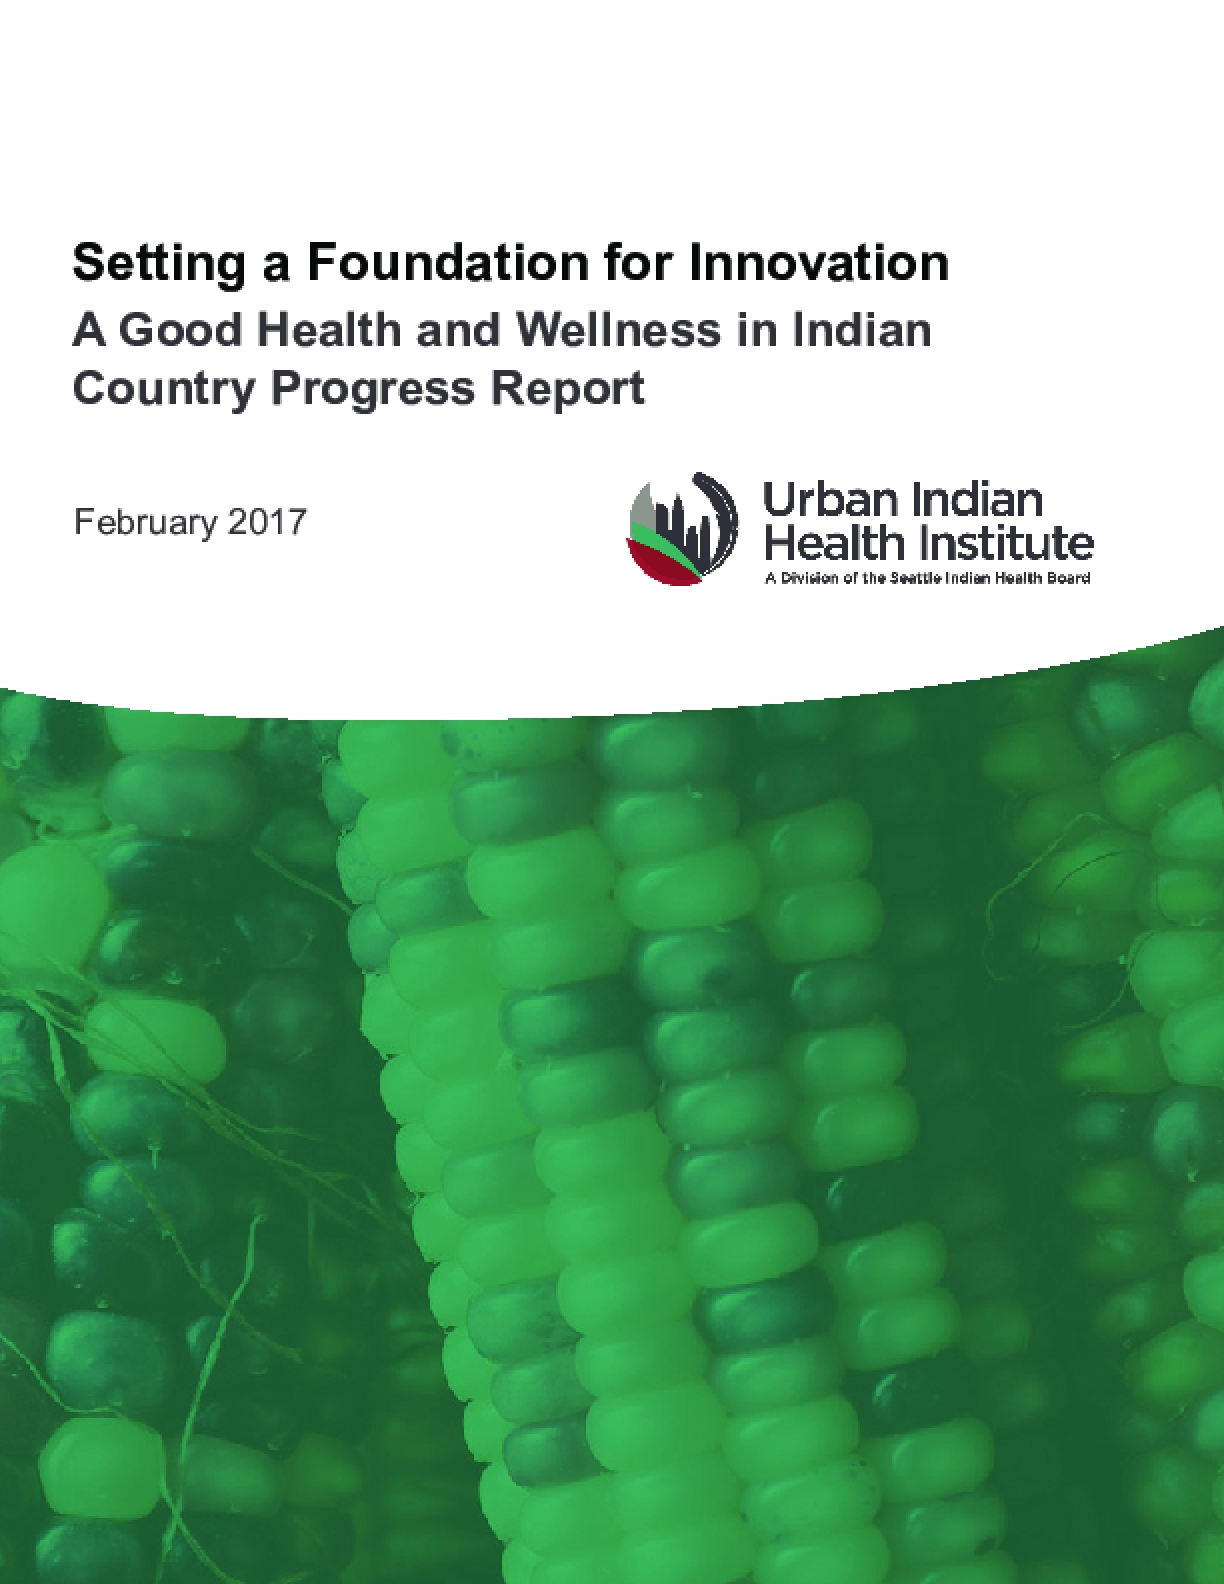 Setting a Foundation for Innovation: A Good Health and Wellness in Indian Country Progress Report